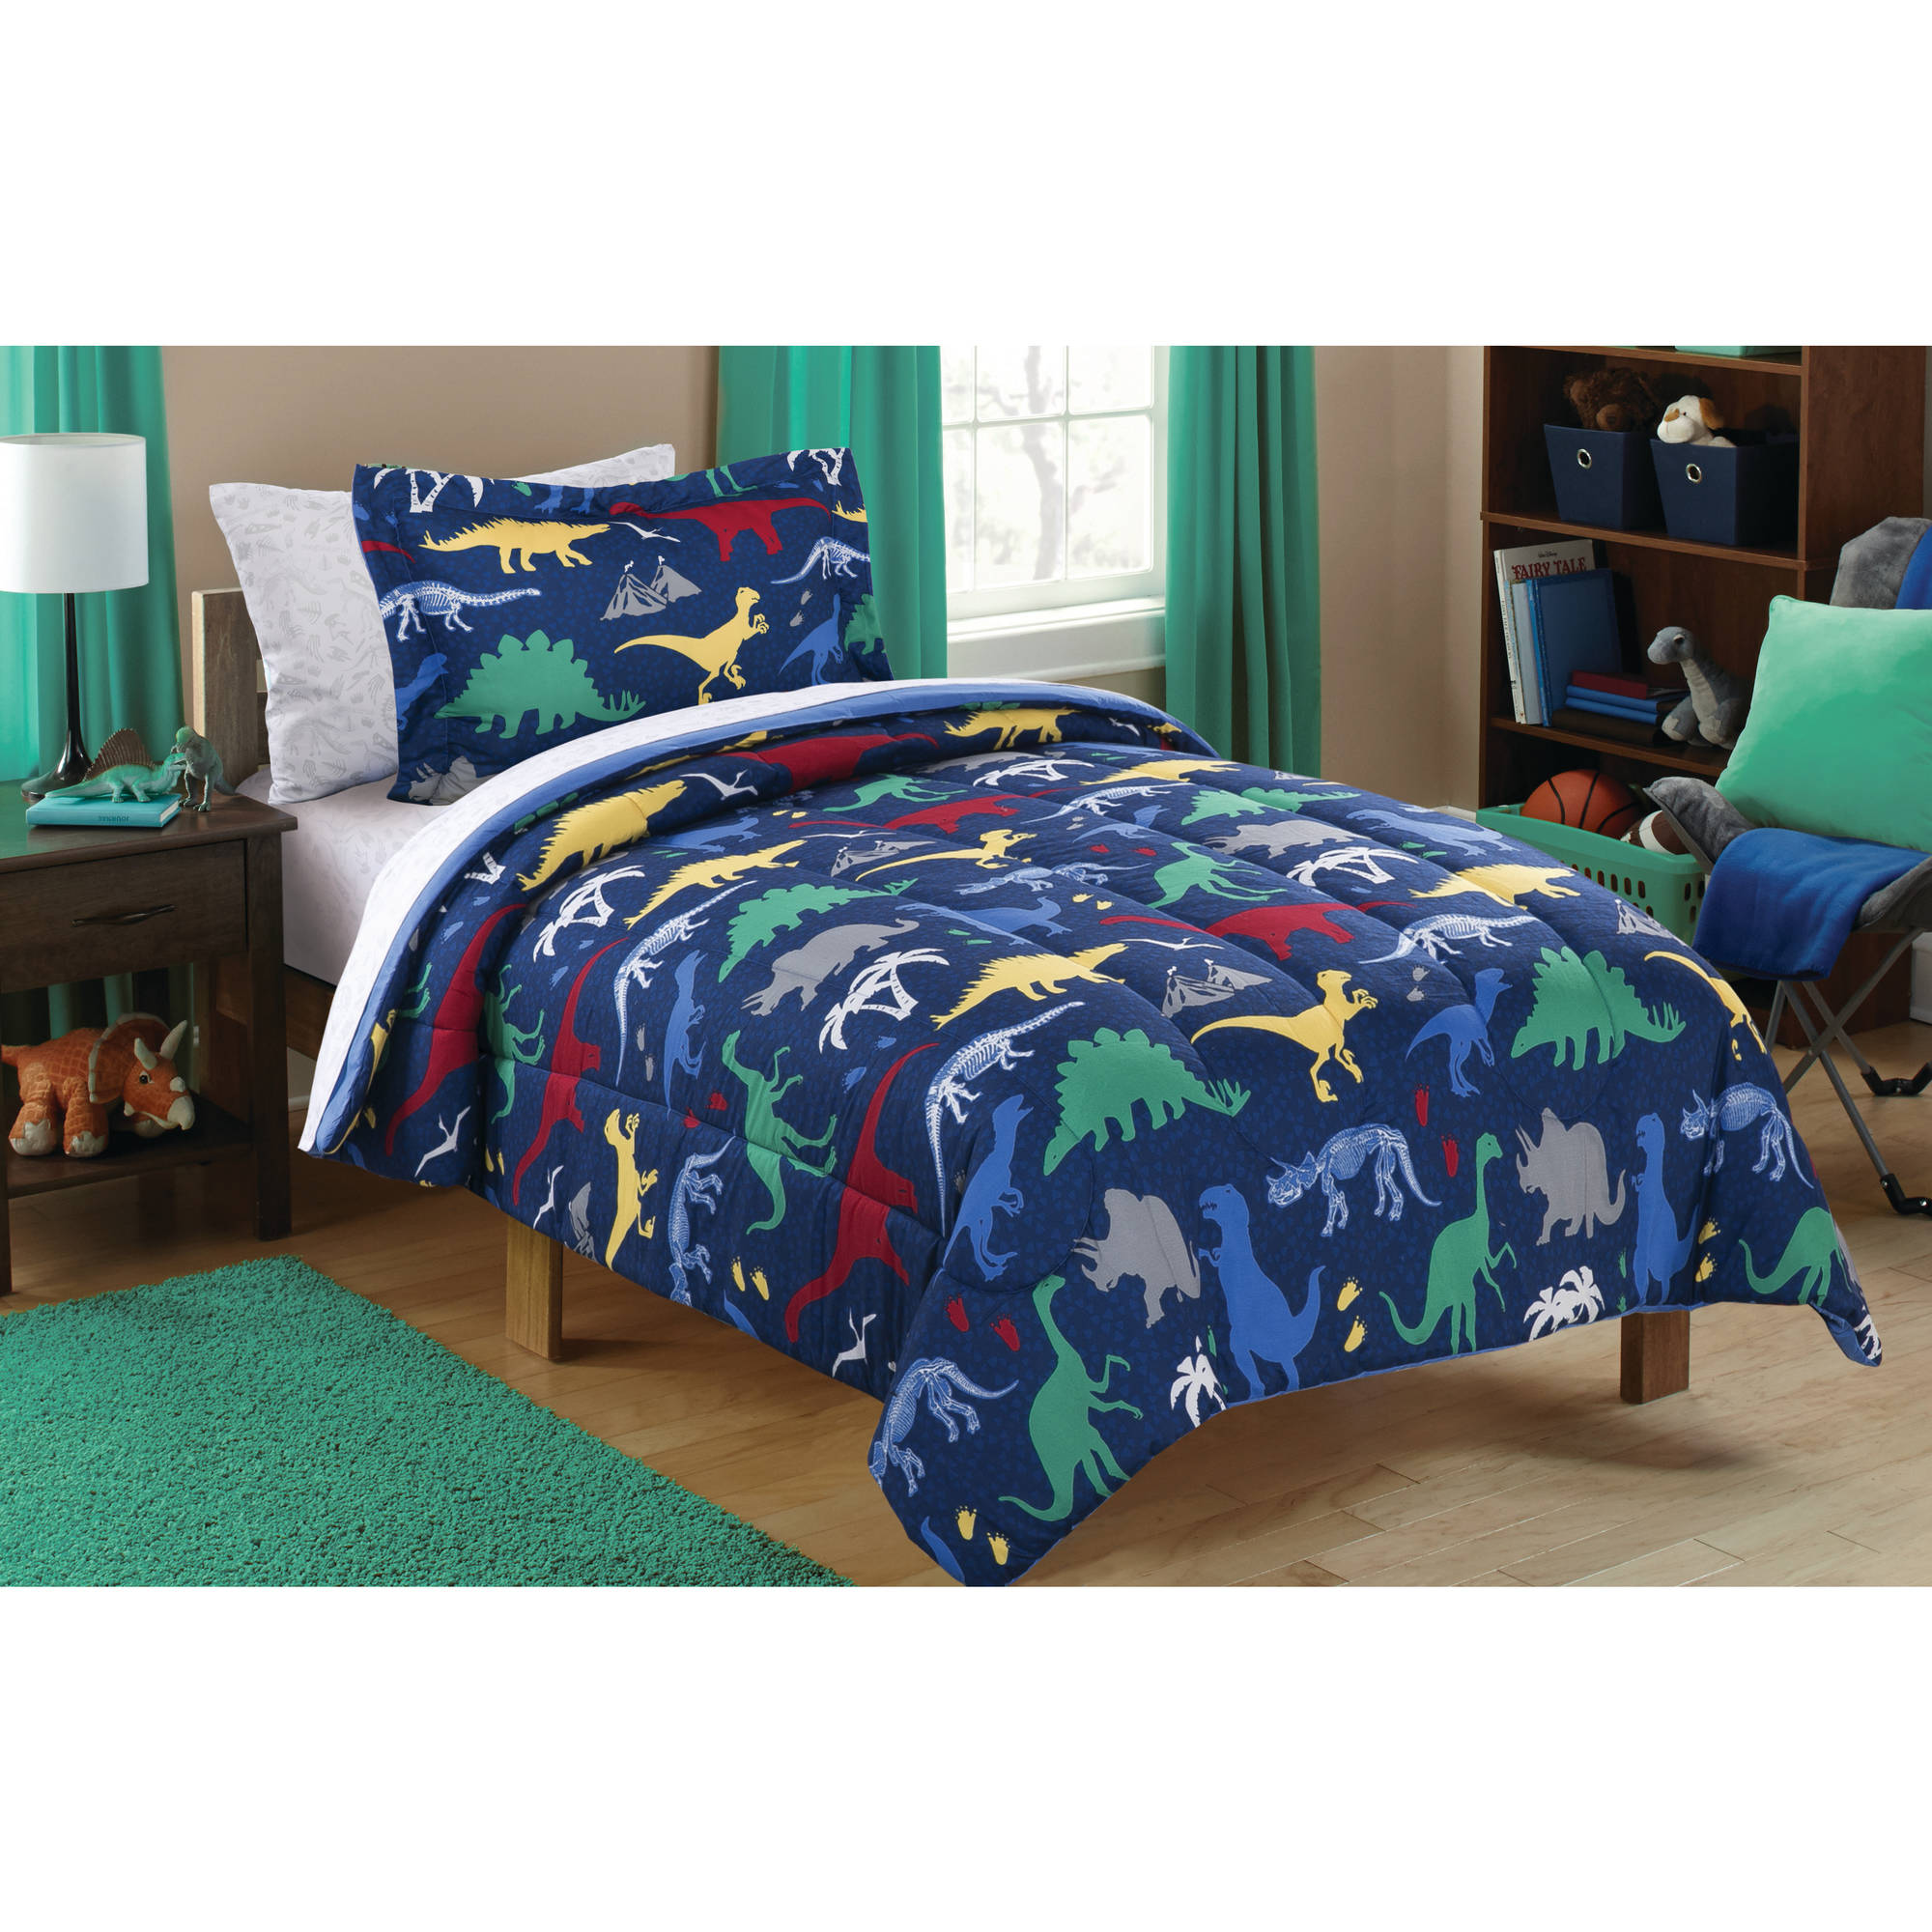 Mainstays Kids Dino Roam Bed in a Bag Coordinating Bedding Set